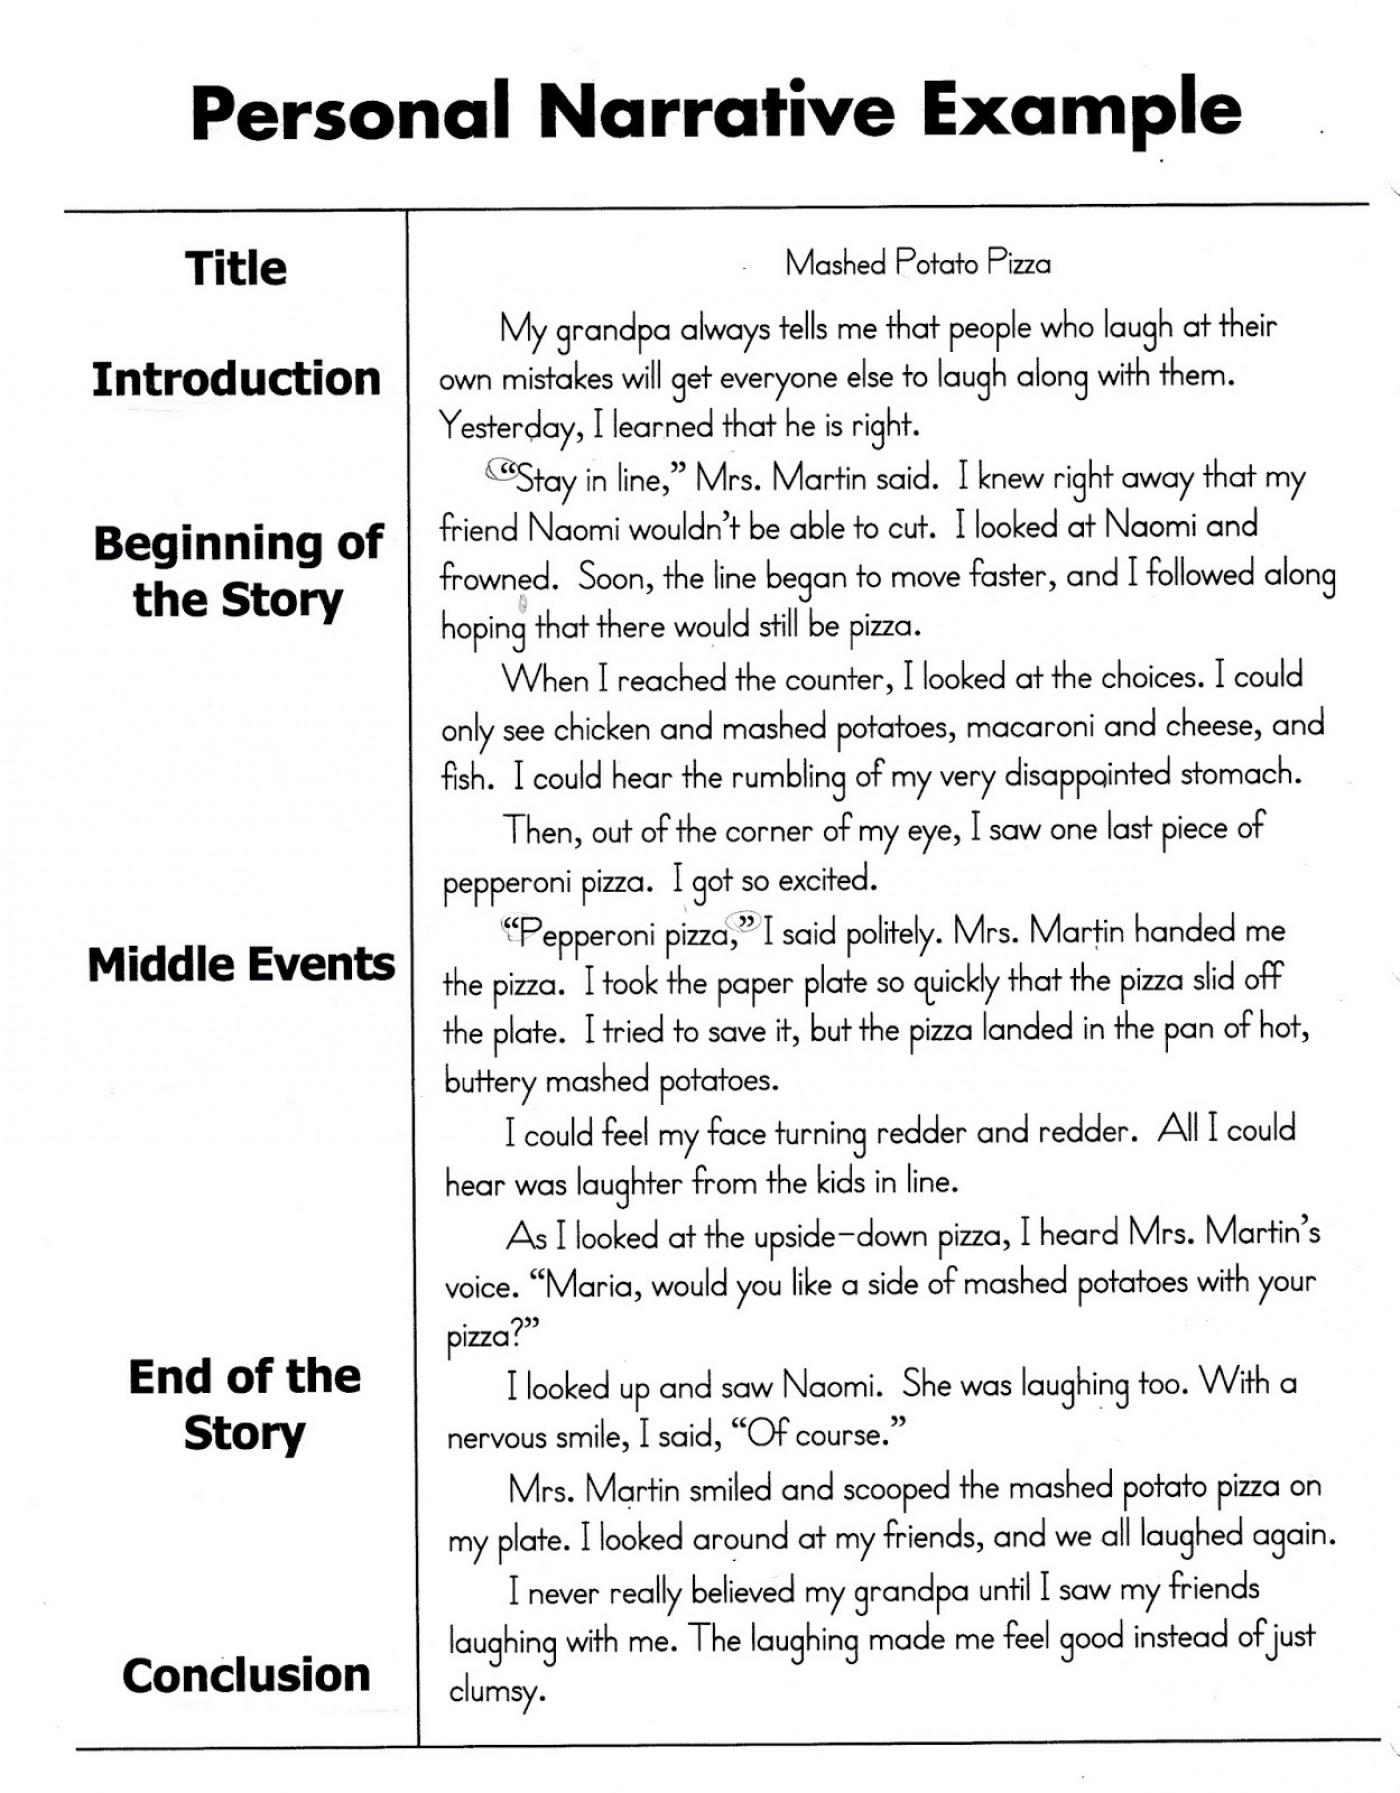 Personal narrative essay about death